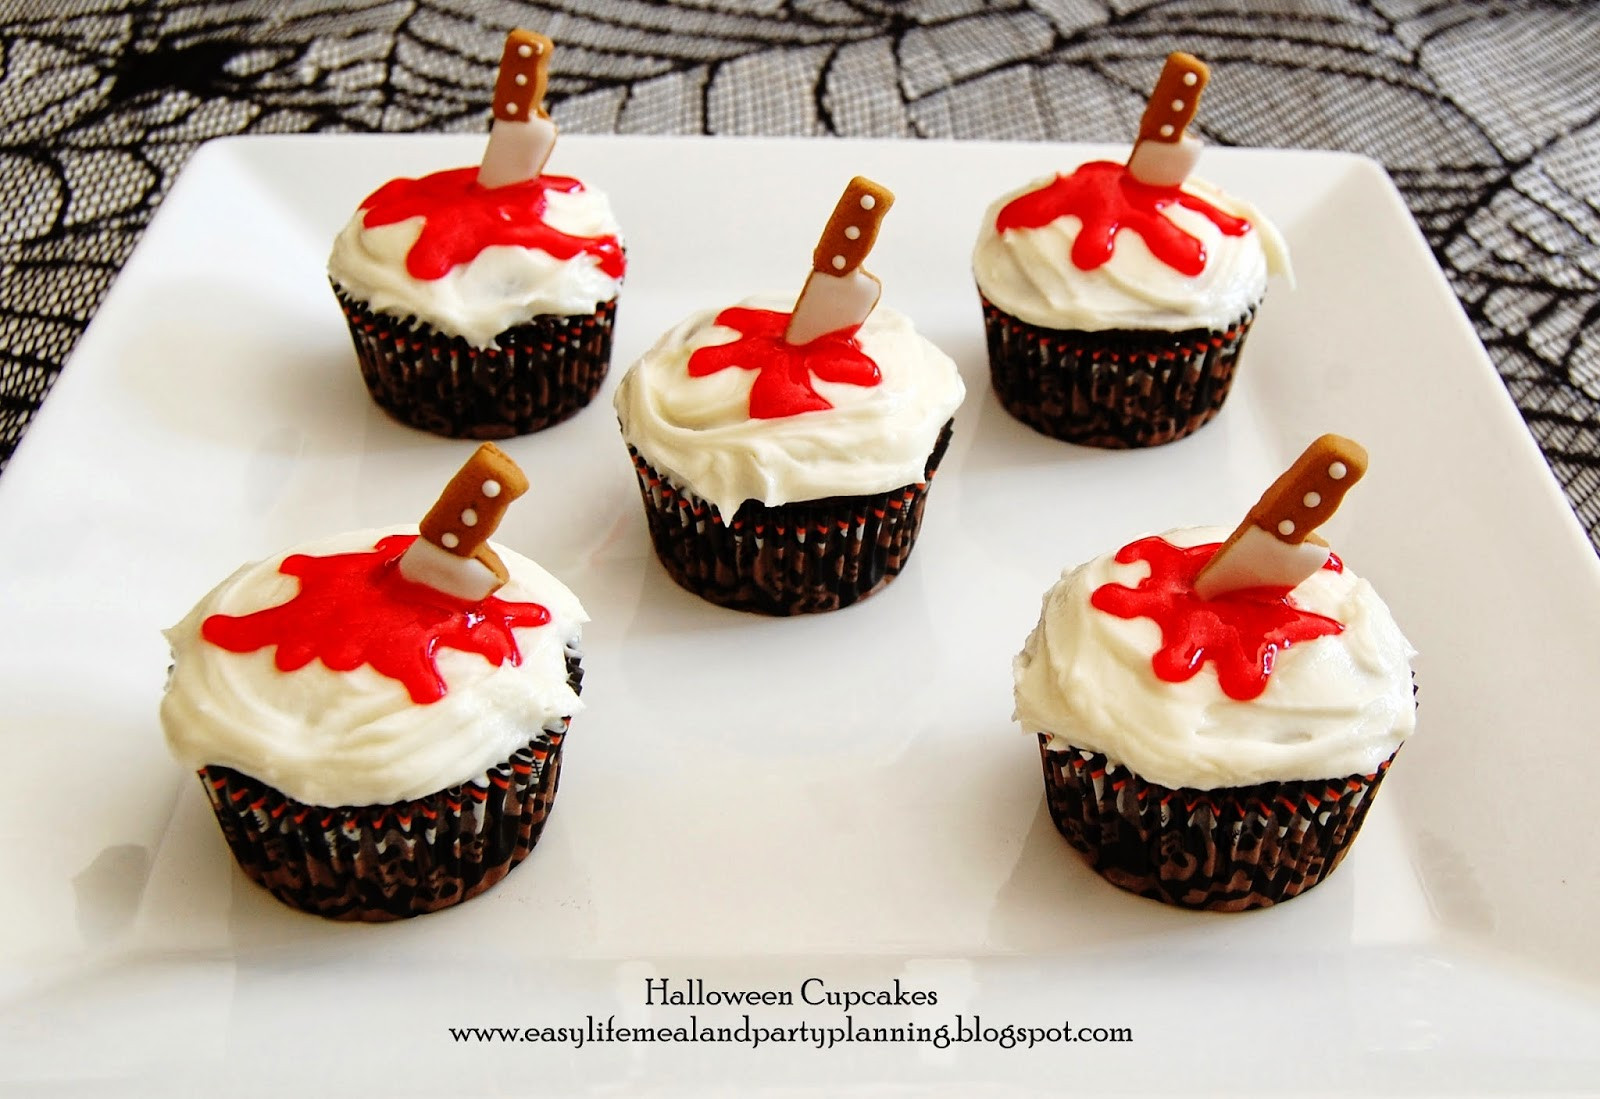 Easy Halloween Cupcakes Decorations  Easy Life Meal and Party Planning October 2013